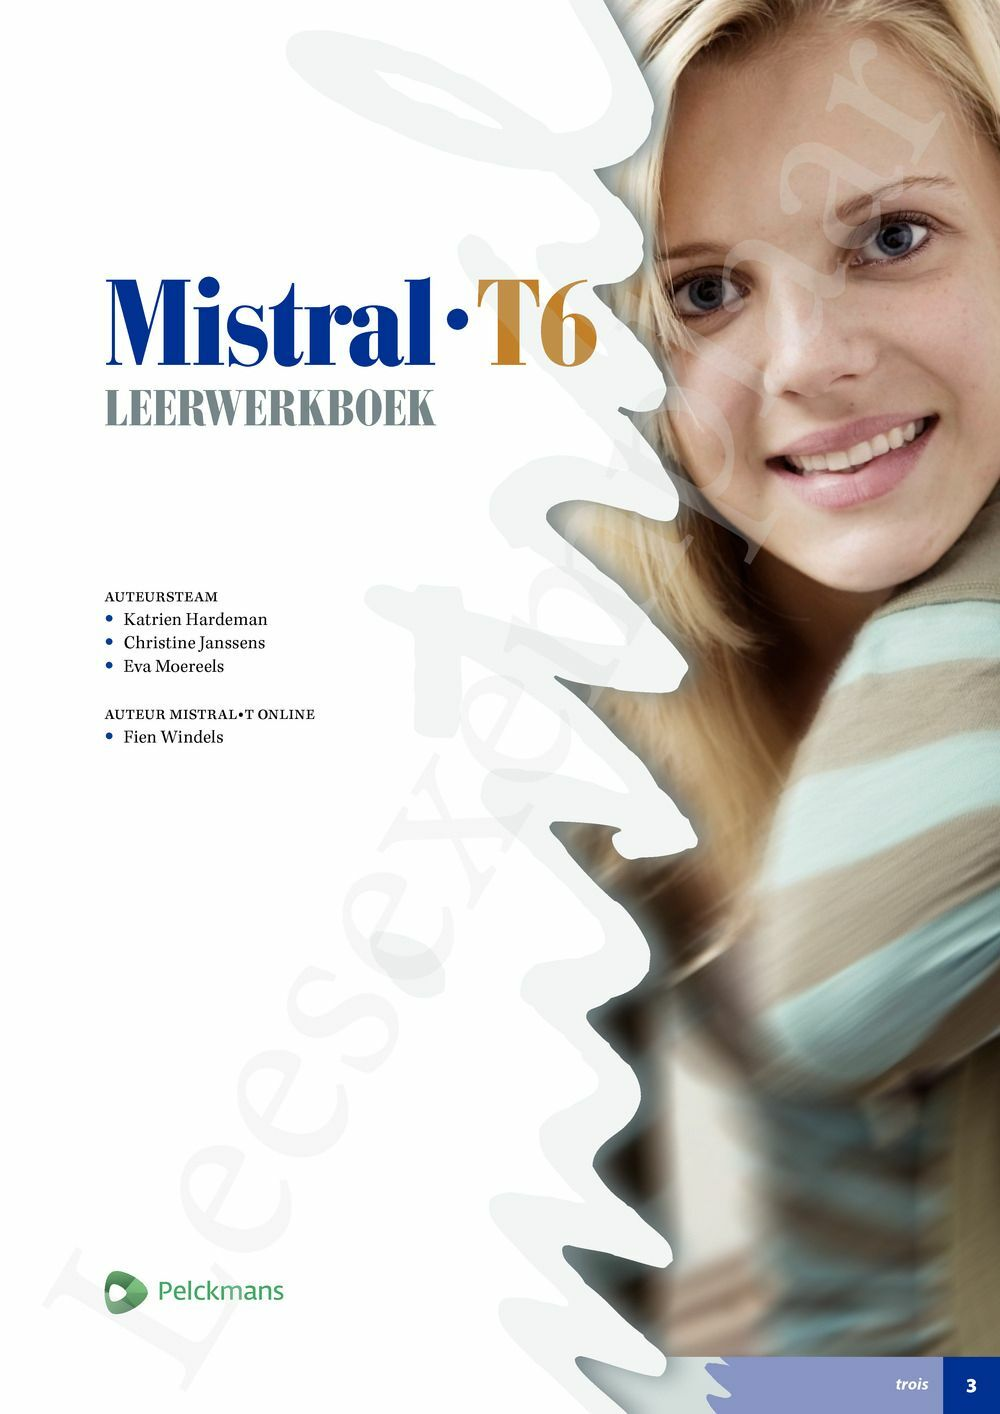 Preview: Mistral T6 leerwerkboek